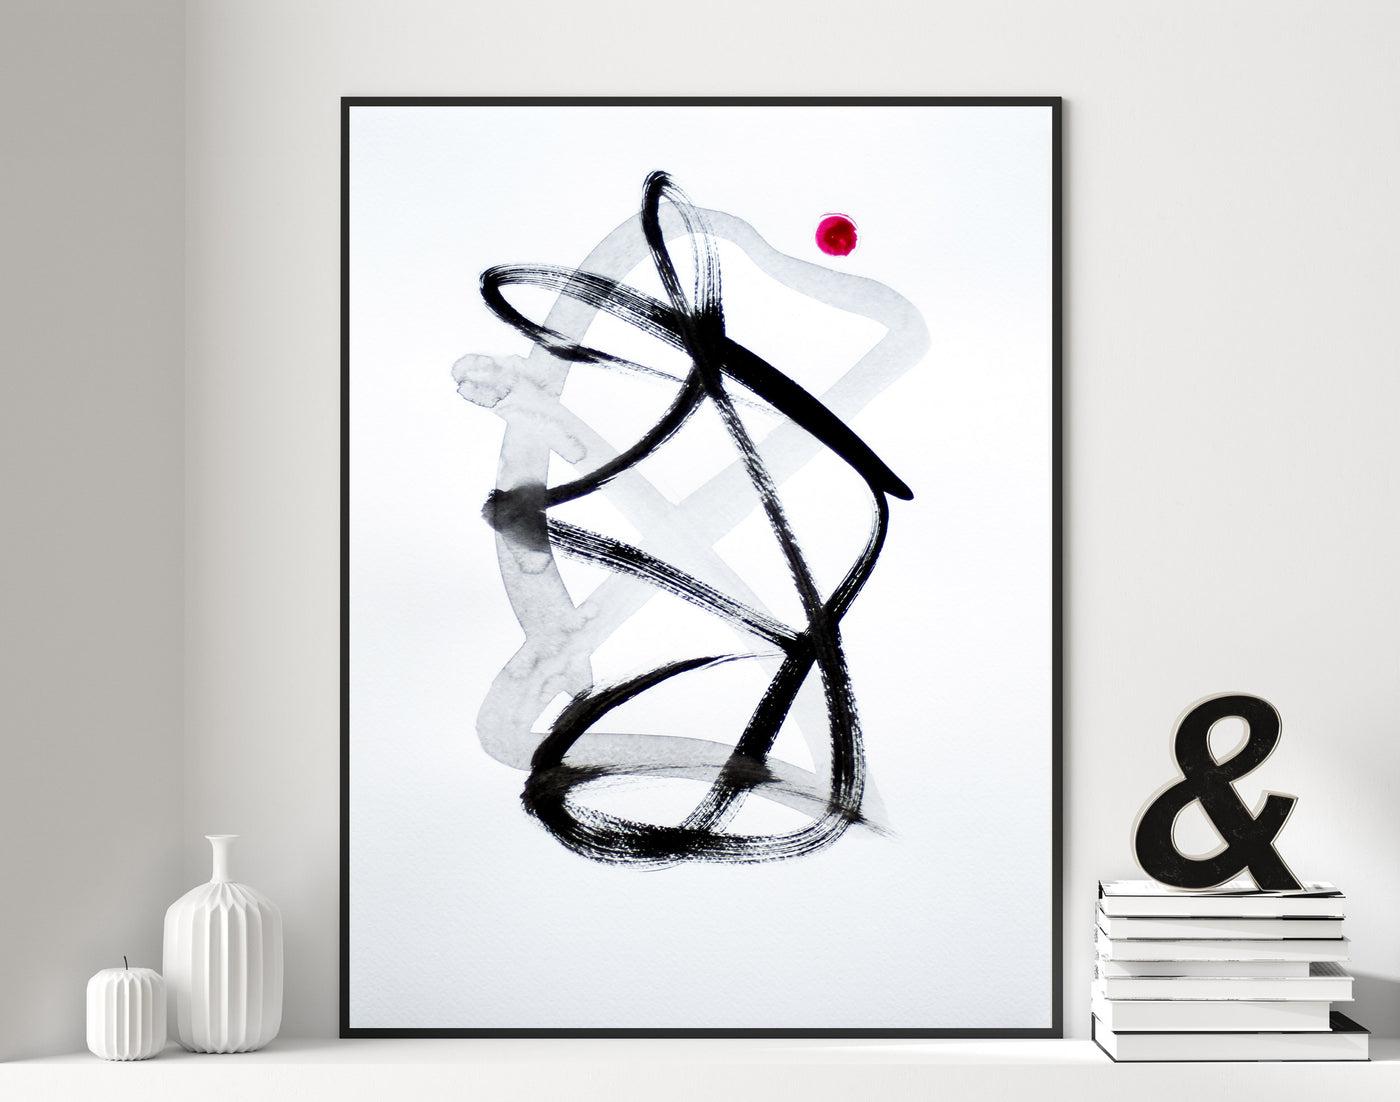 Abstract ink painting on paper for sale